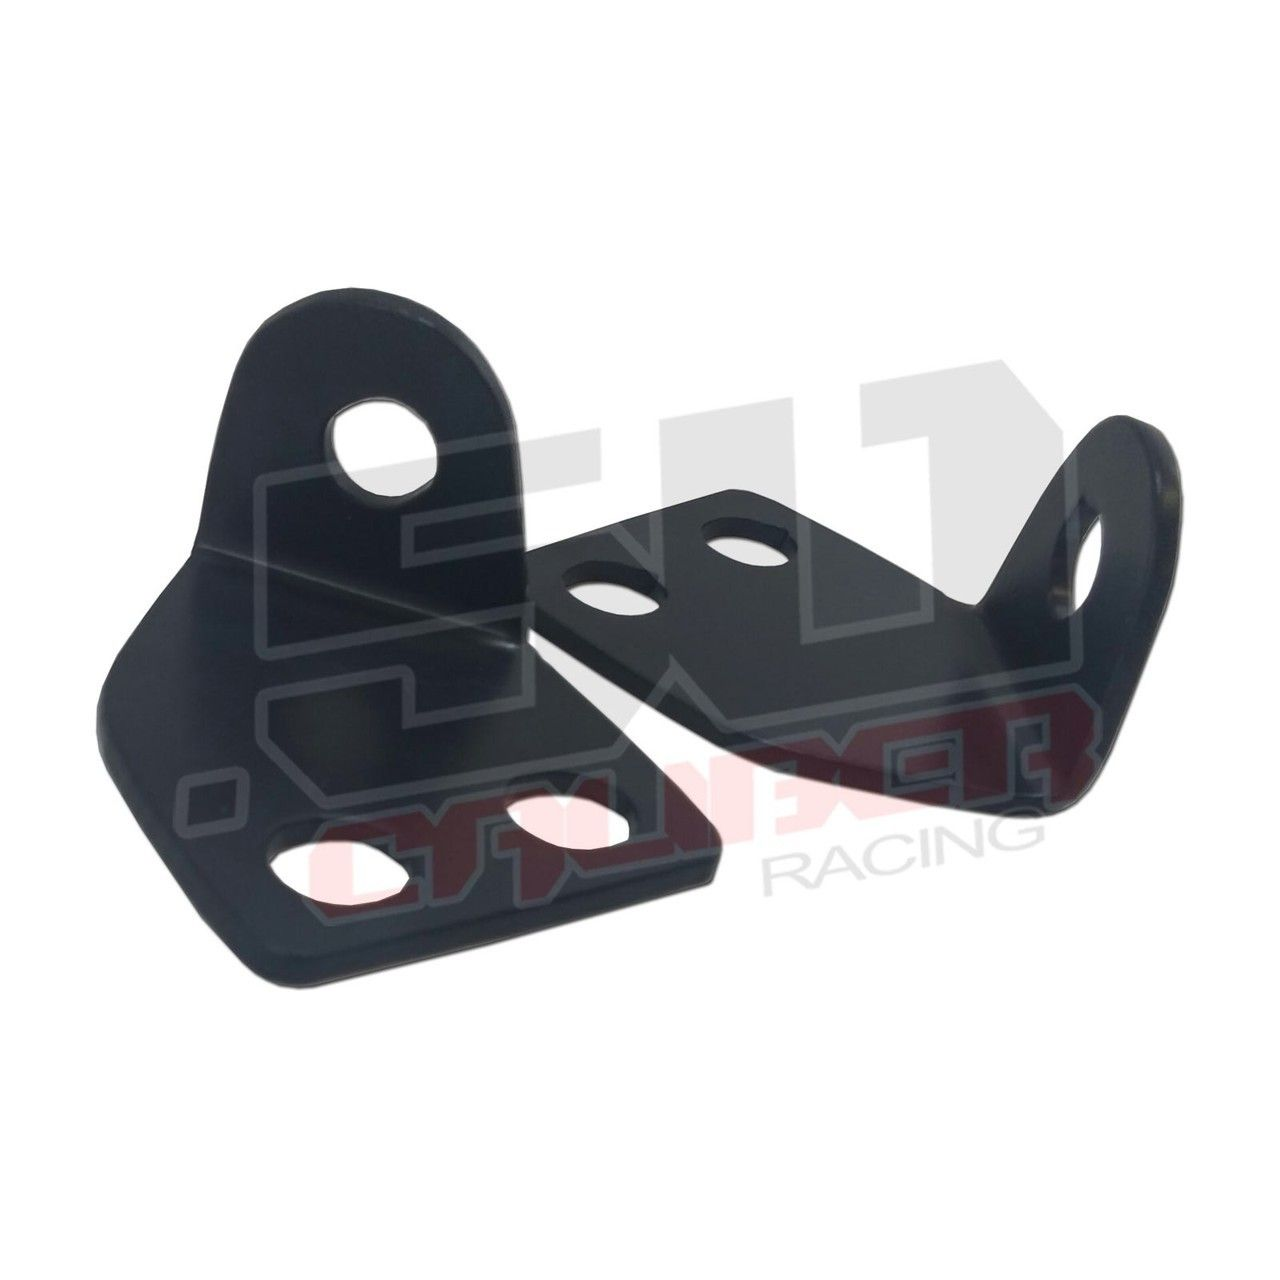 50 Caliber A-Pillar Pod or Cube Light Mount Brackets for Polaris RZR